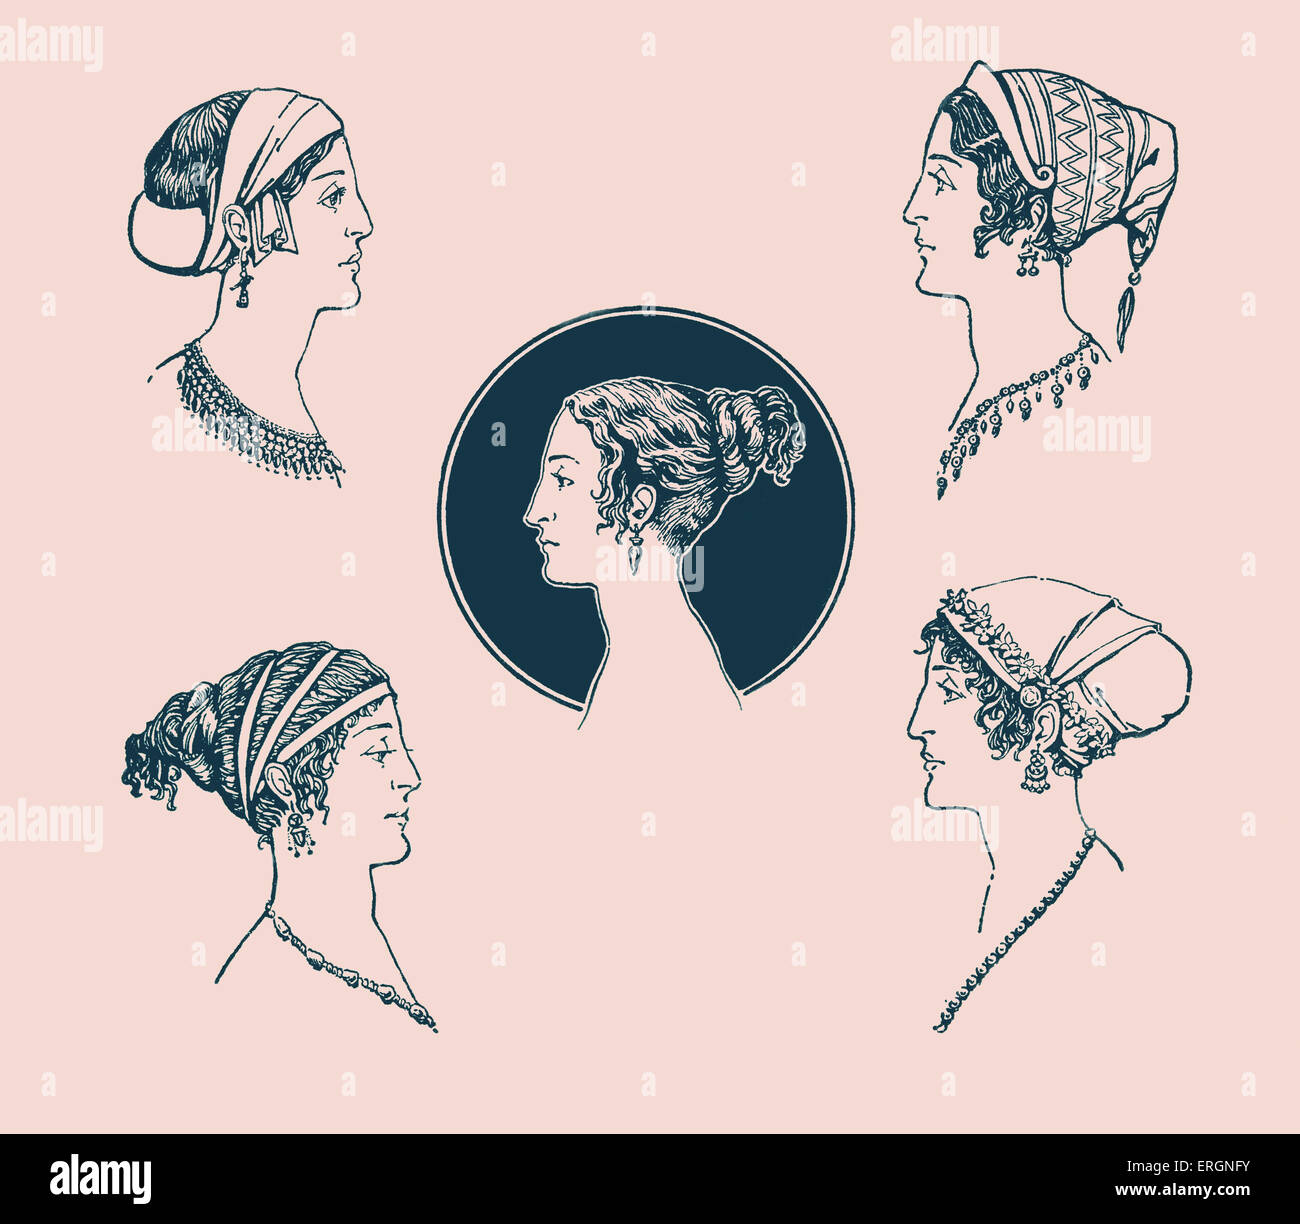 Ancient Greek hairstyles. Example of Ancient Greek female hairstyles and headdresses in 5th Century BC Greece. Illustration - Stock Image